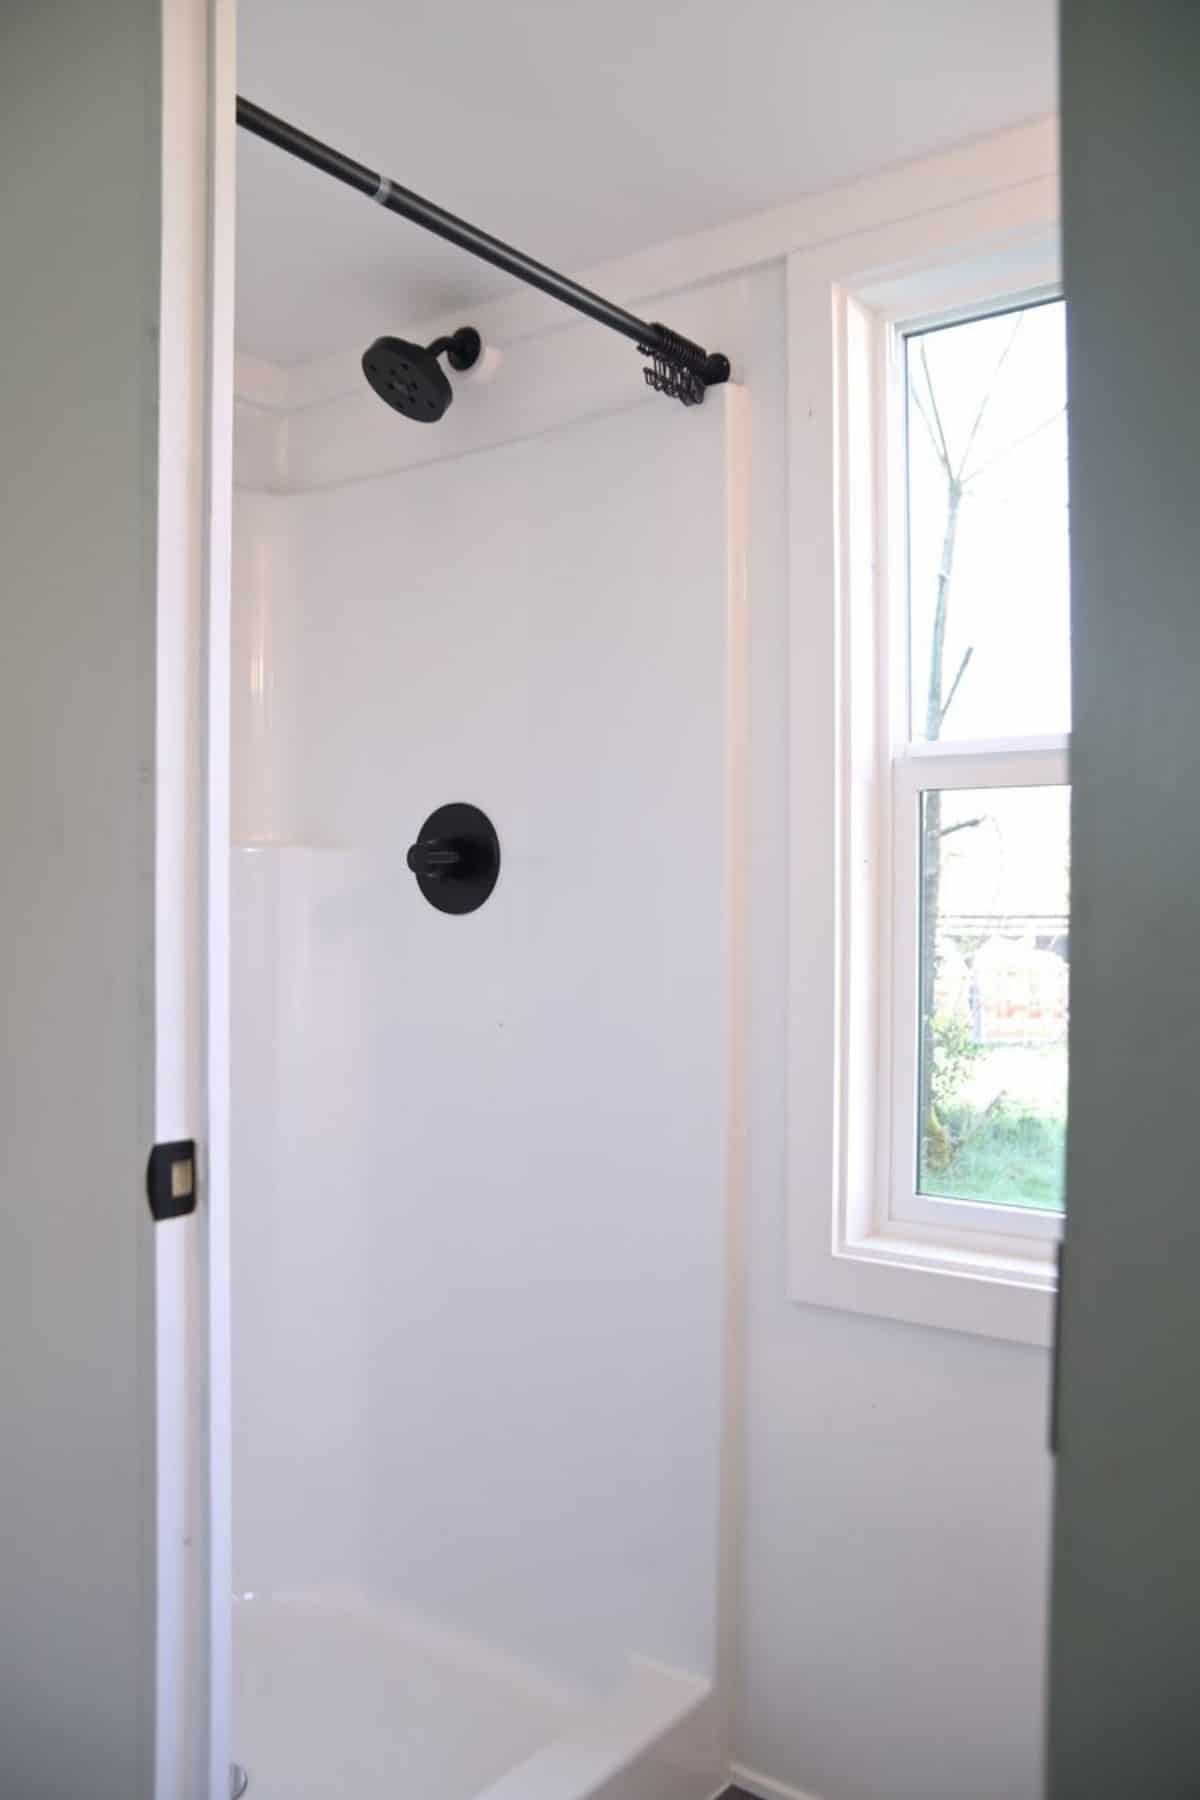 White shower stall with black faucets